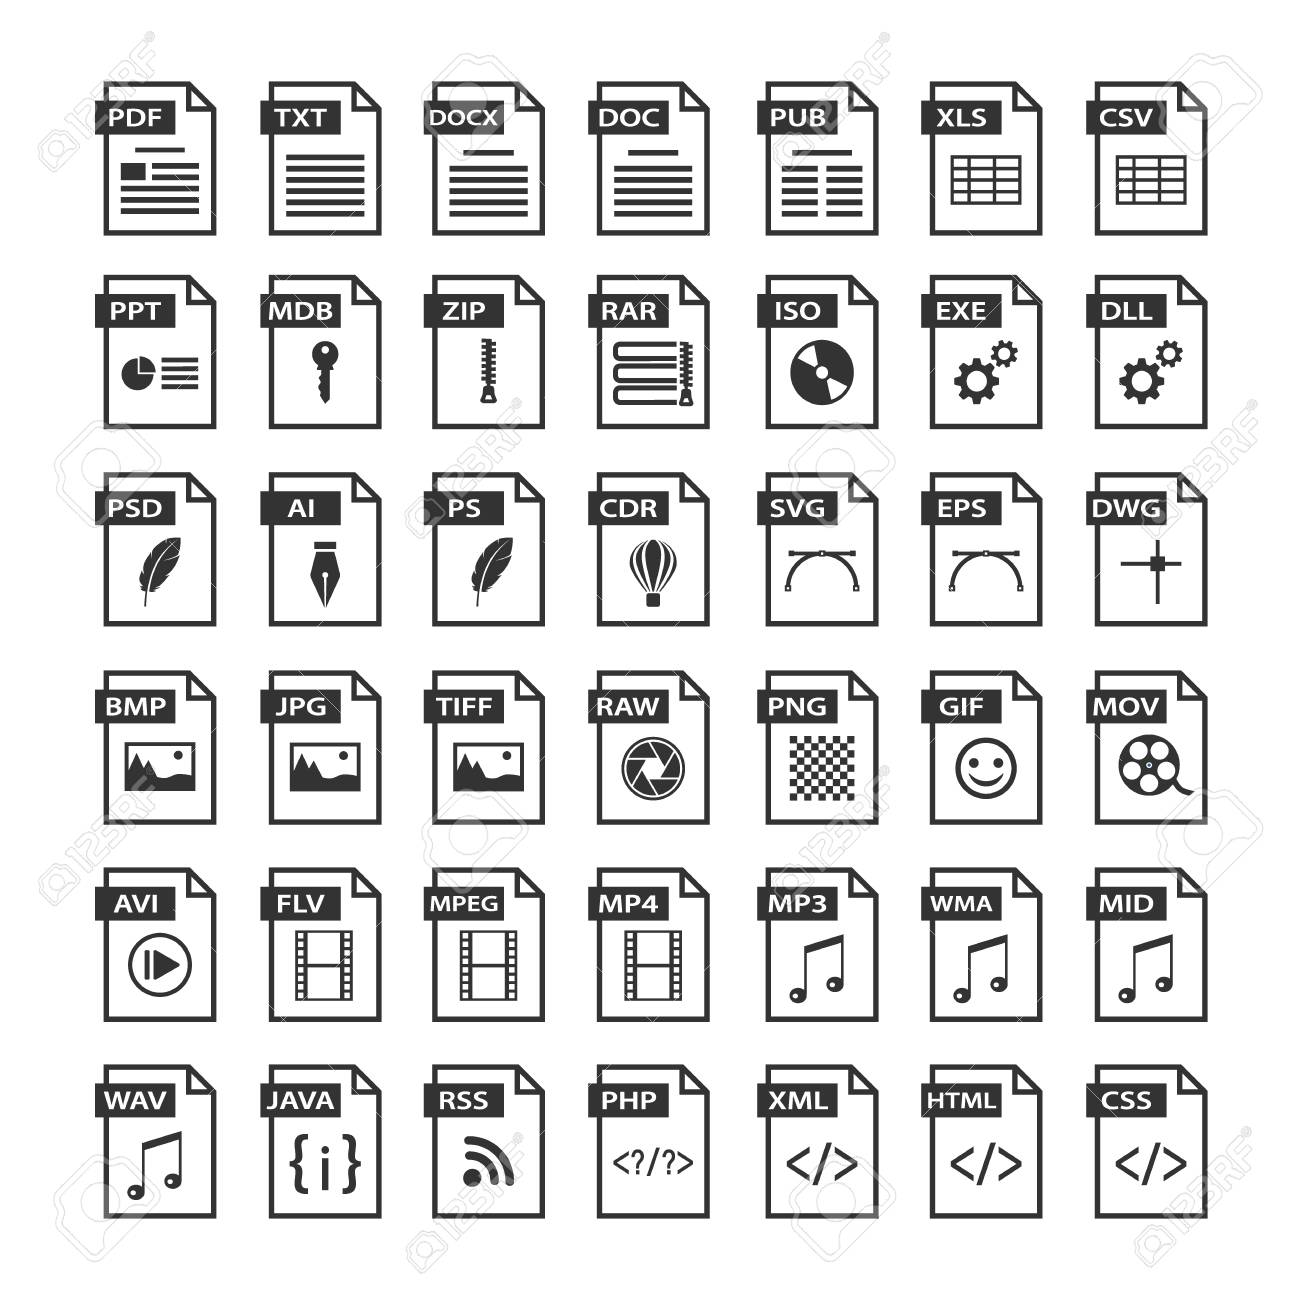 File type icons. Files format icon set in black and white, software symbols buttons - 100892958